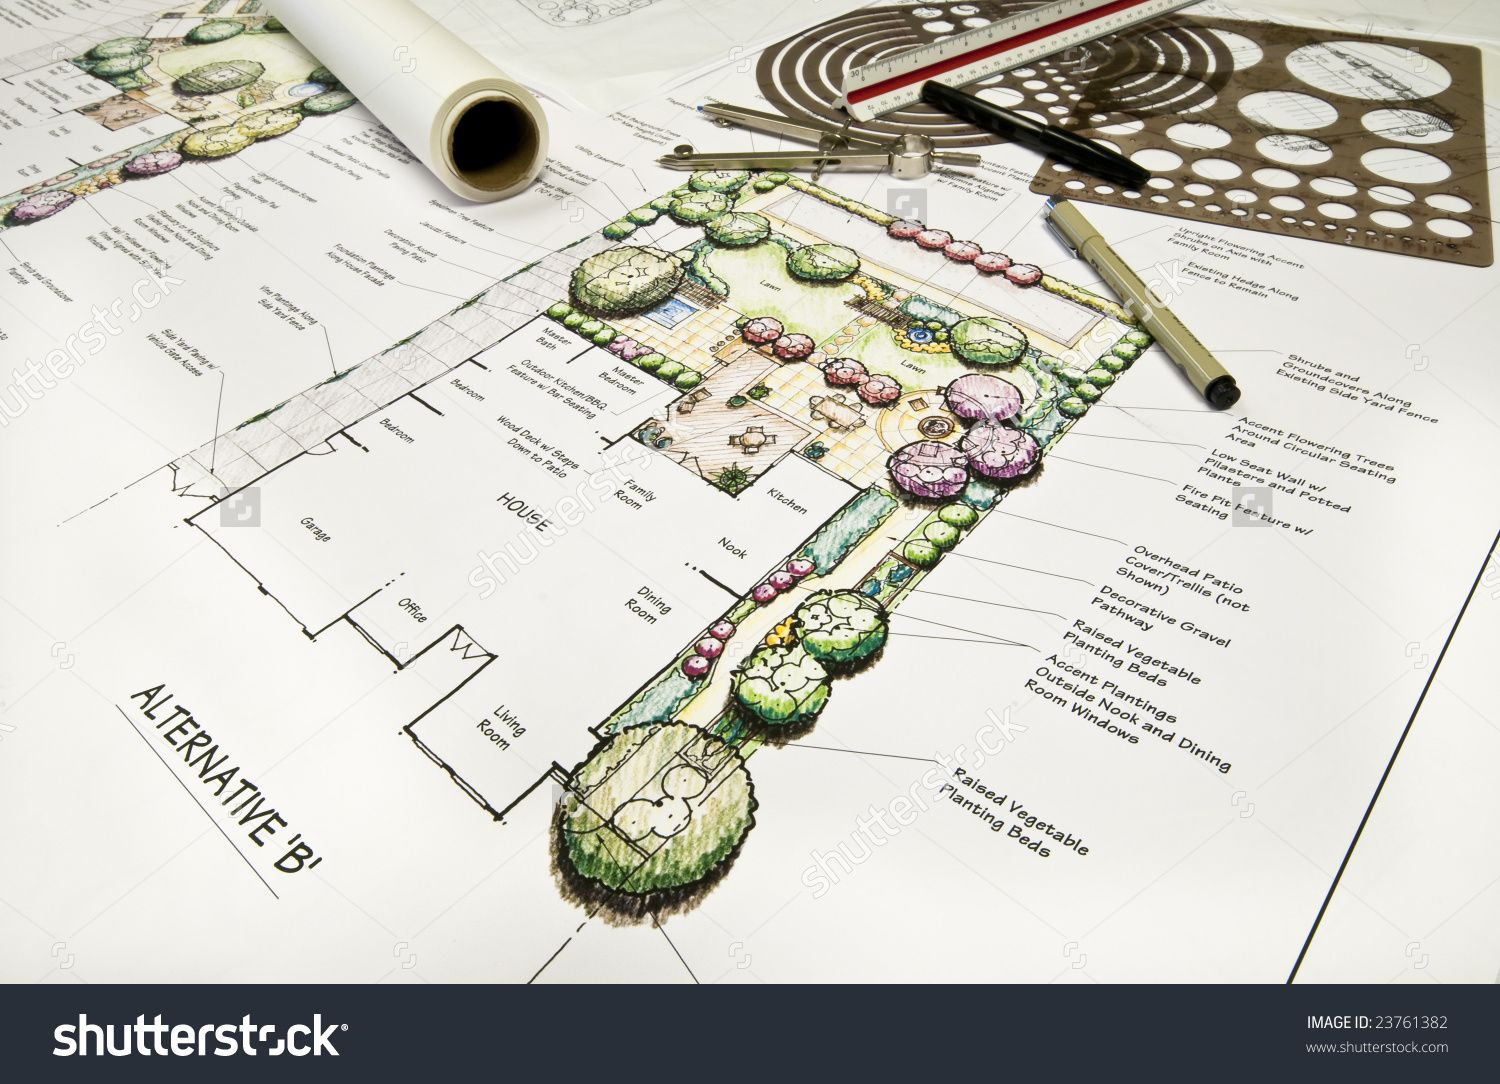 Residential Back Yard Landscape Design With Drafting Equipment - Drafting equipment